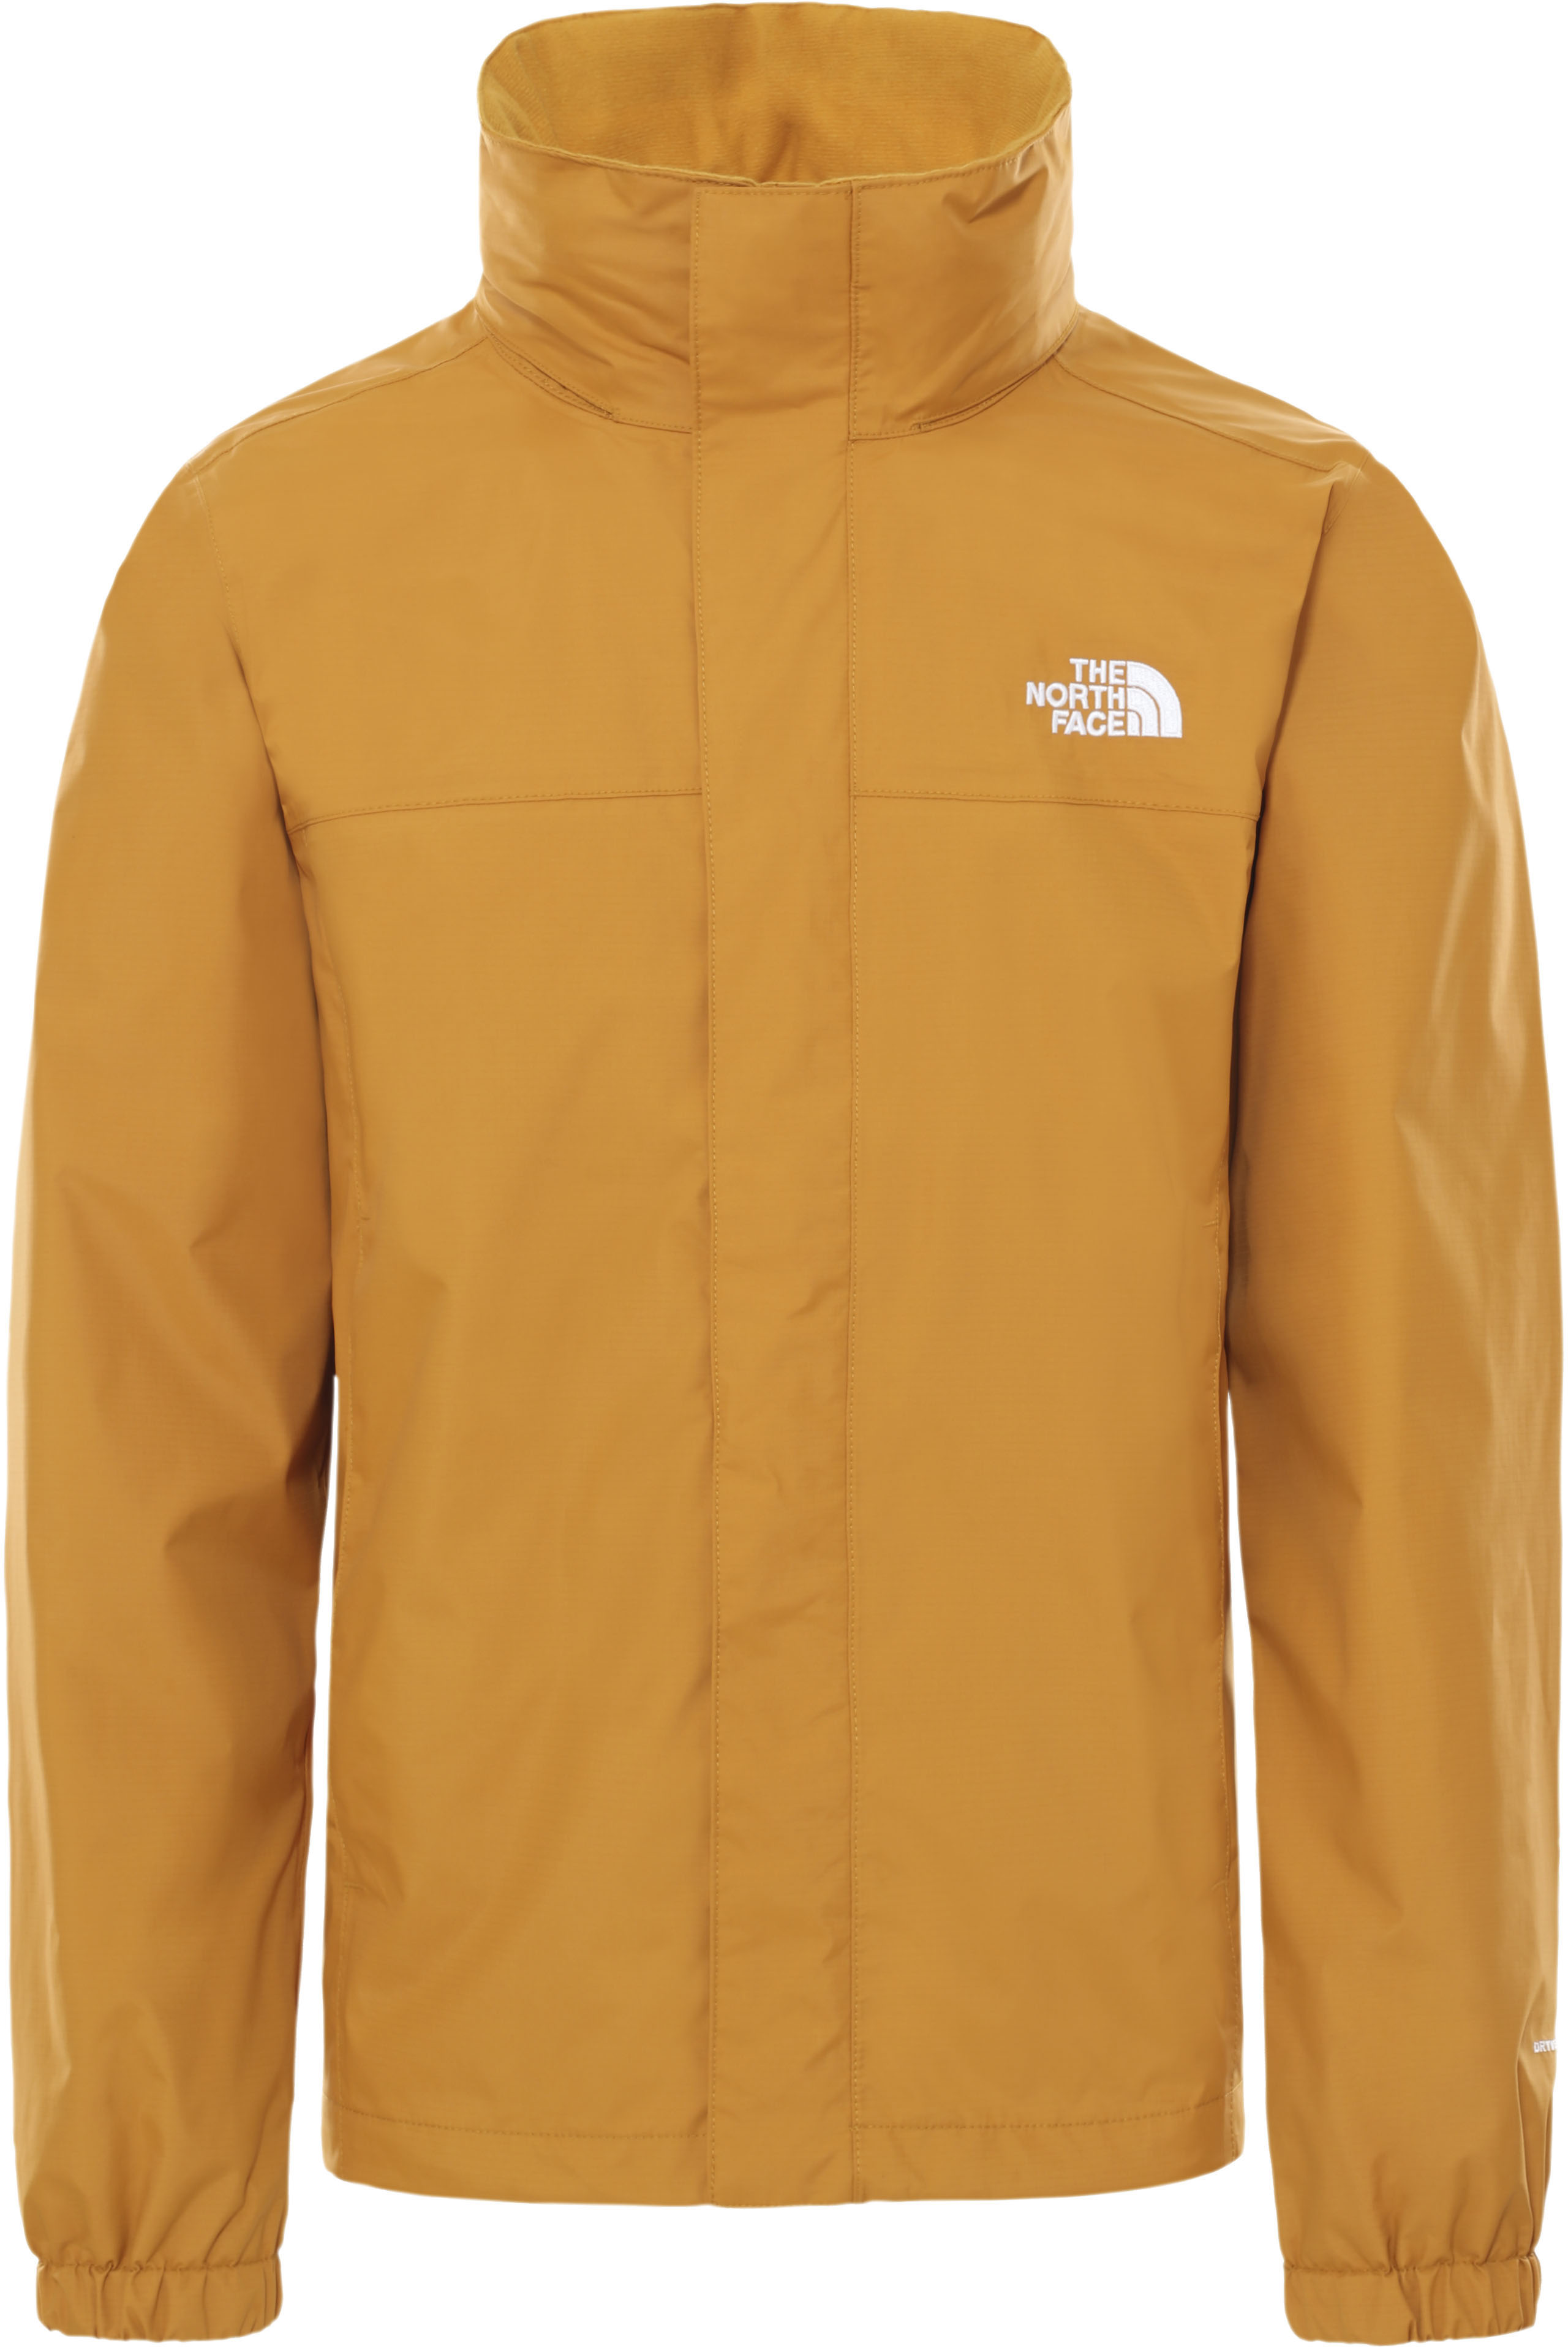 the north face -  Funktionsjacke RESOLVE 2